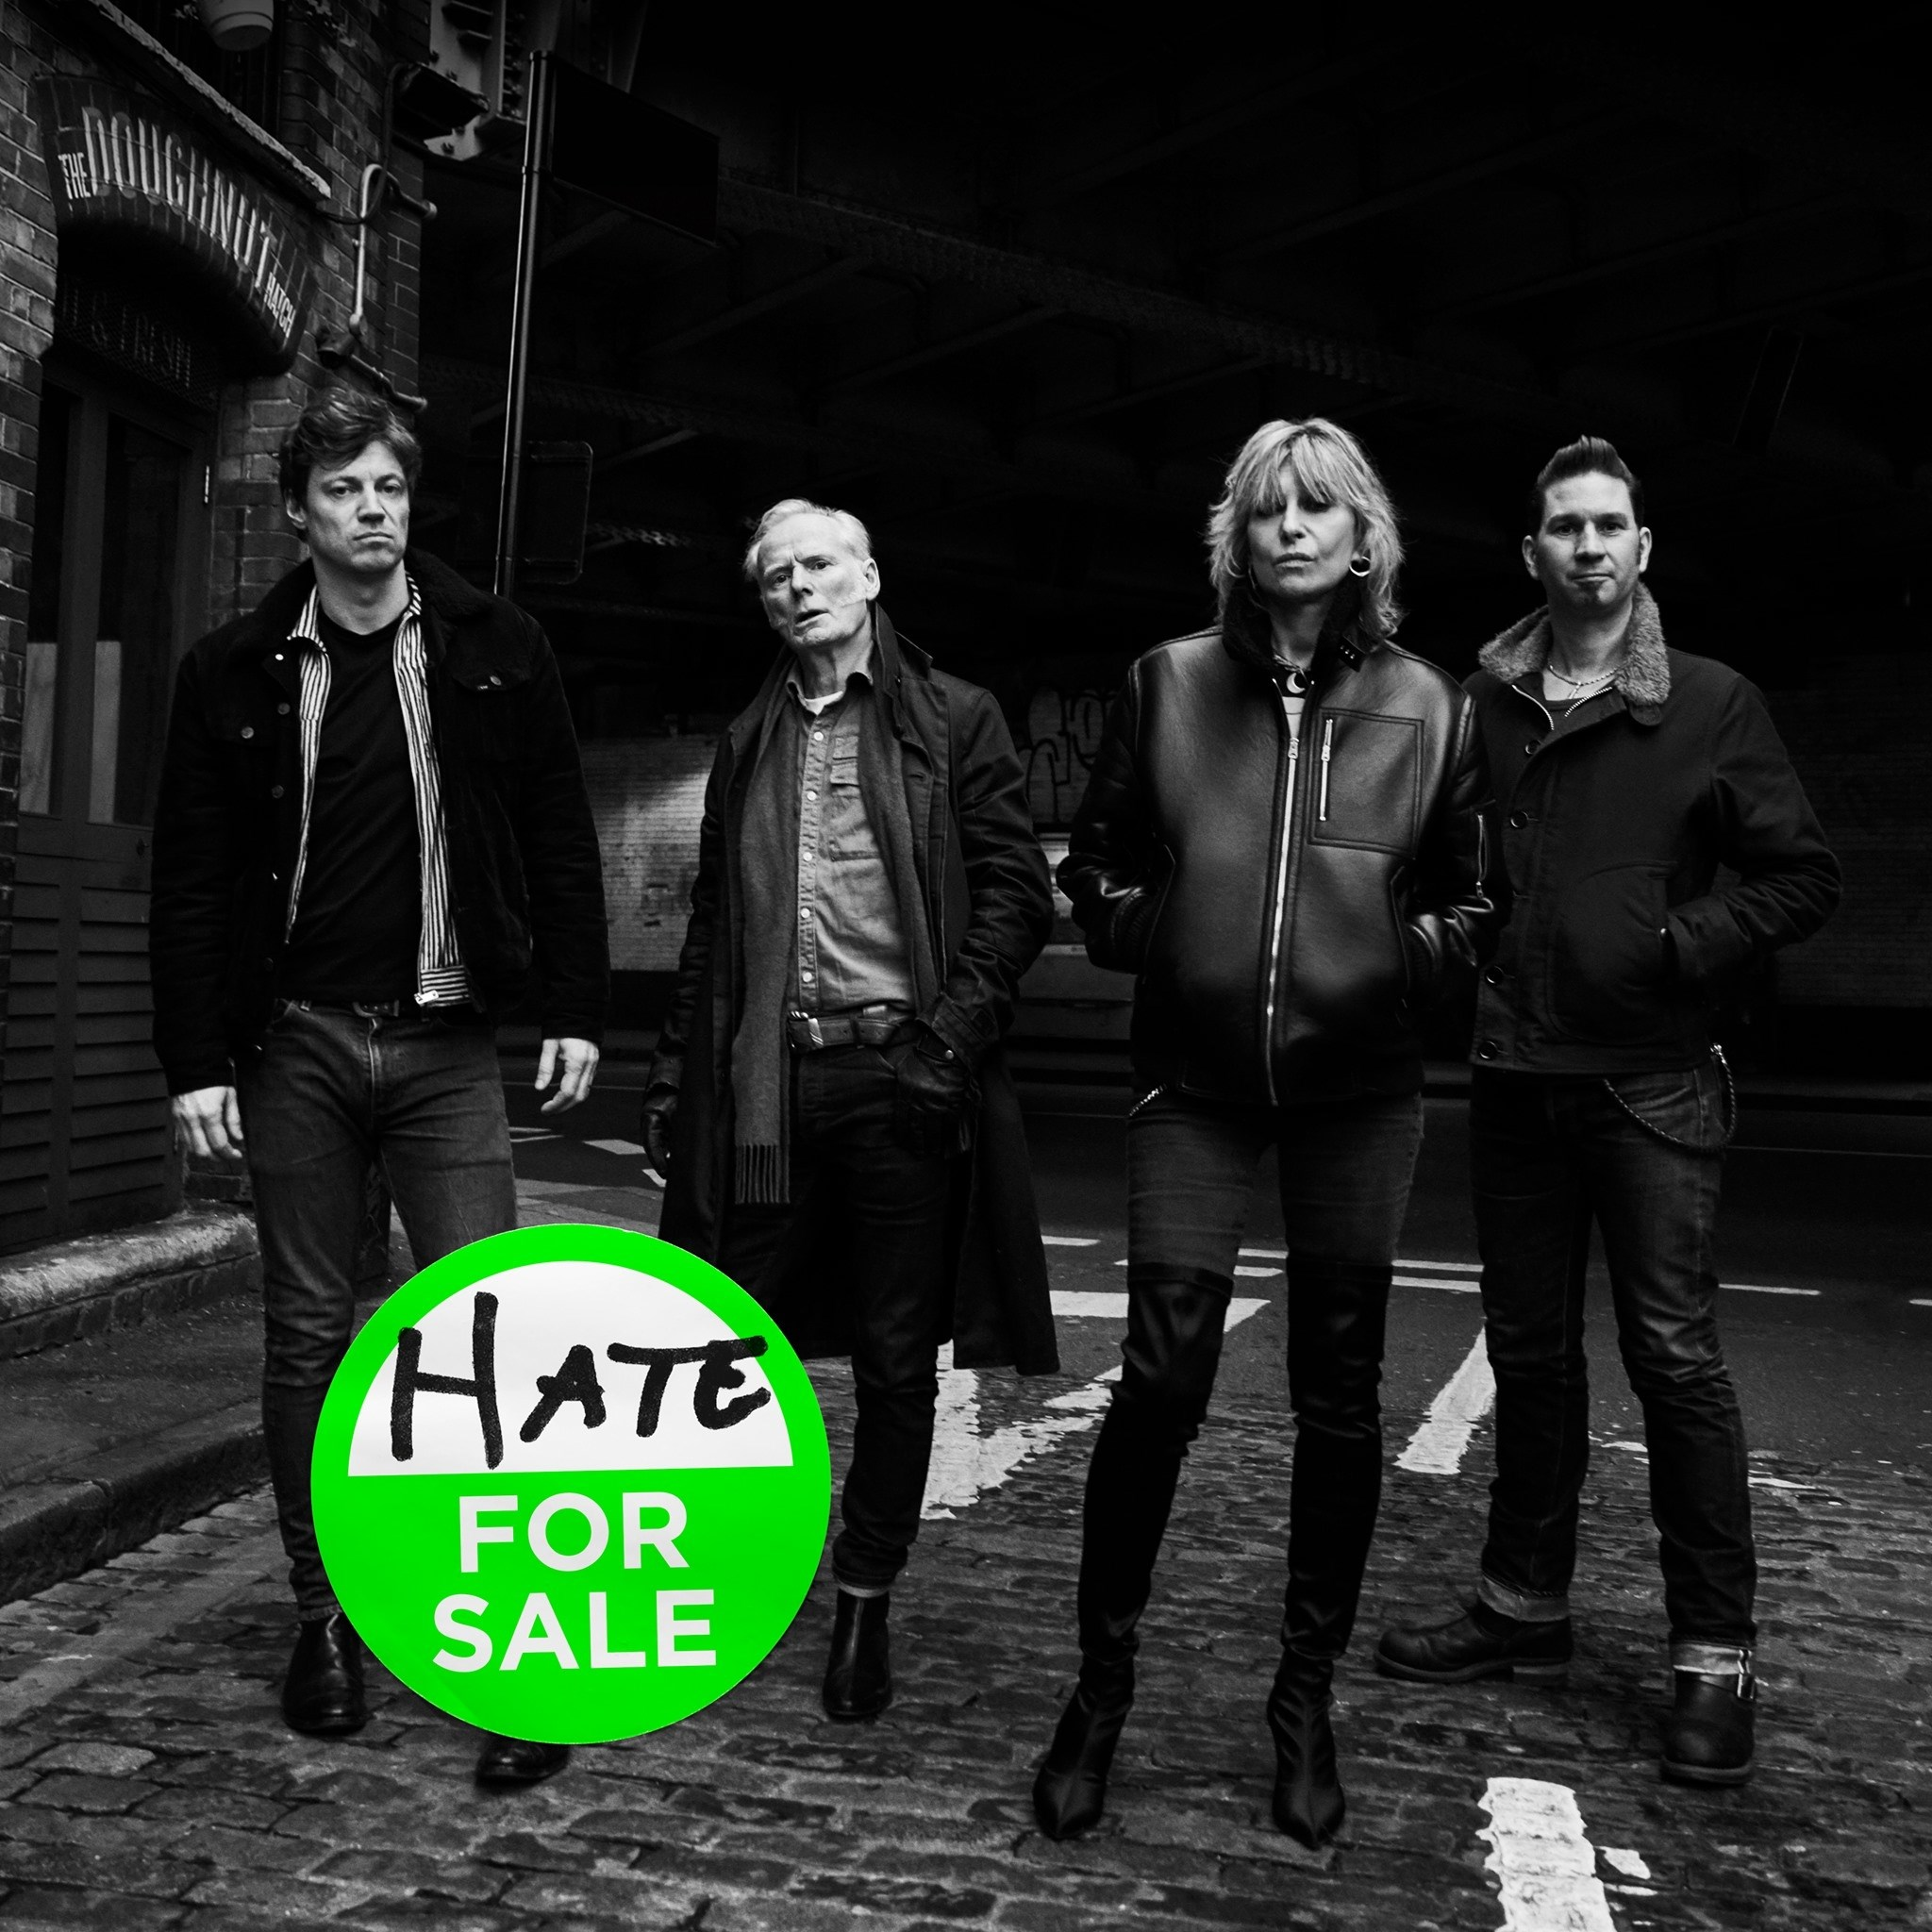 the pretenders hate for sale album cover artwork